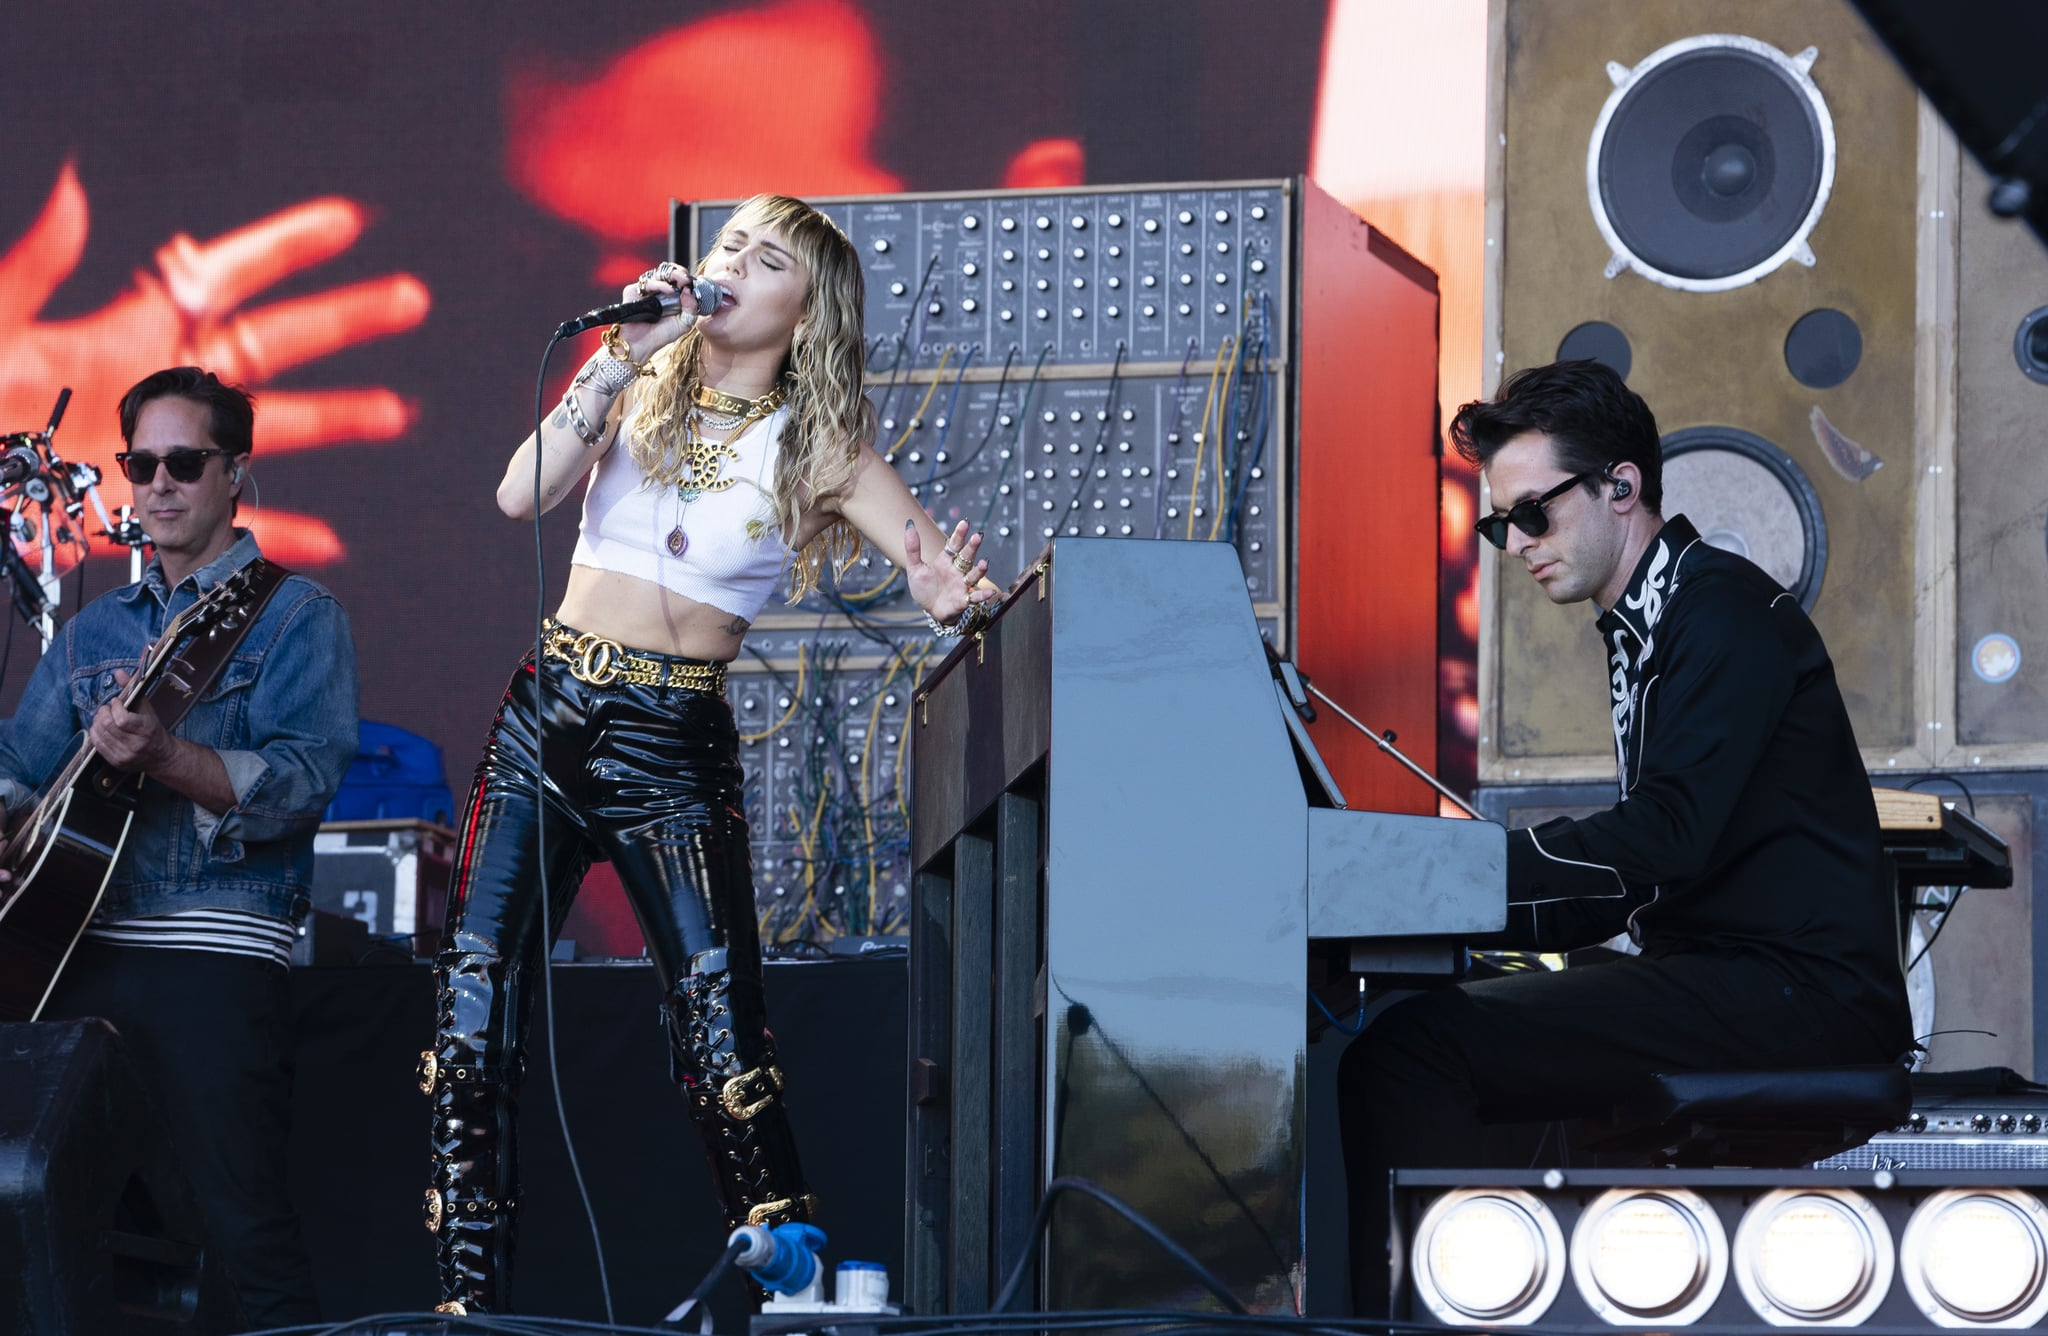 GLASTONBURY, ENGLAND - JUNE 30: Miley Cyrus & Mark Ronson perform on The Pyramid Stage during day five of Glastonbury Festival at Worthy Farm, Pilton on June 30, 2019 in Glastonbury, England. (Photo by Ki Price/Getty Images)